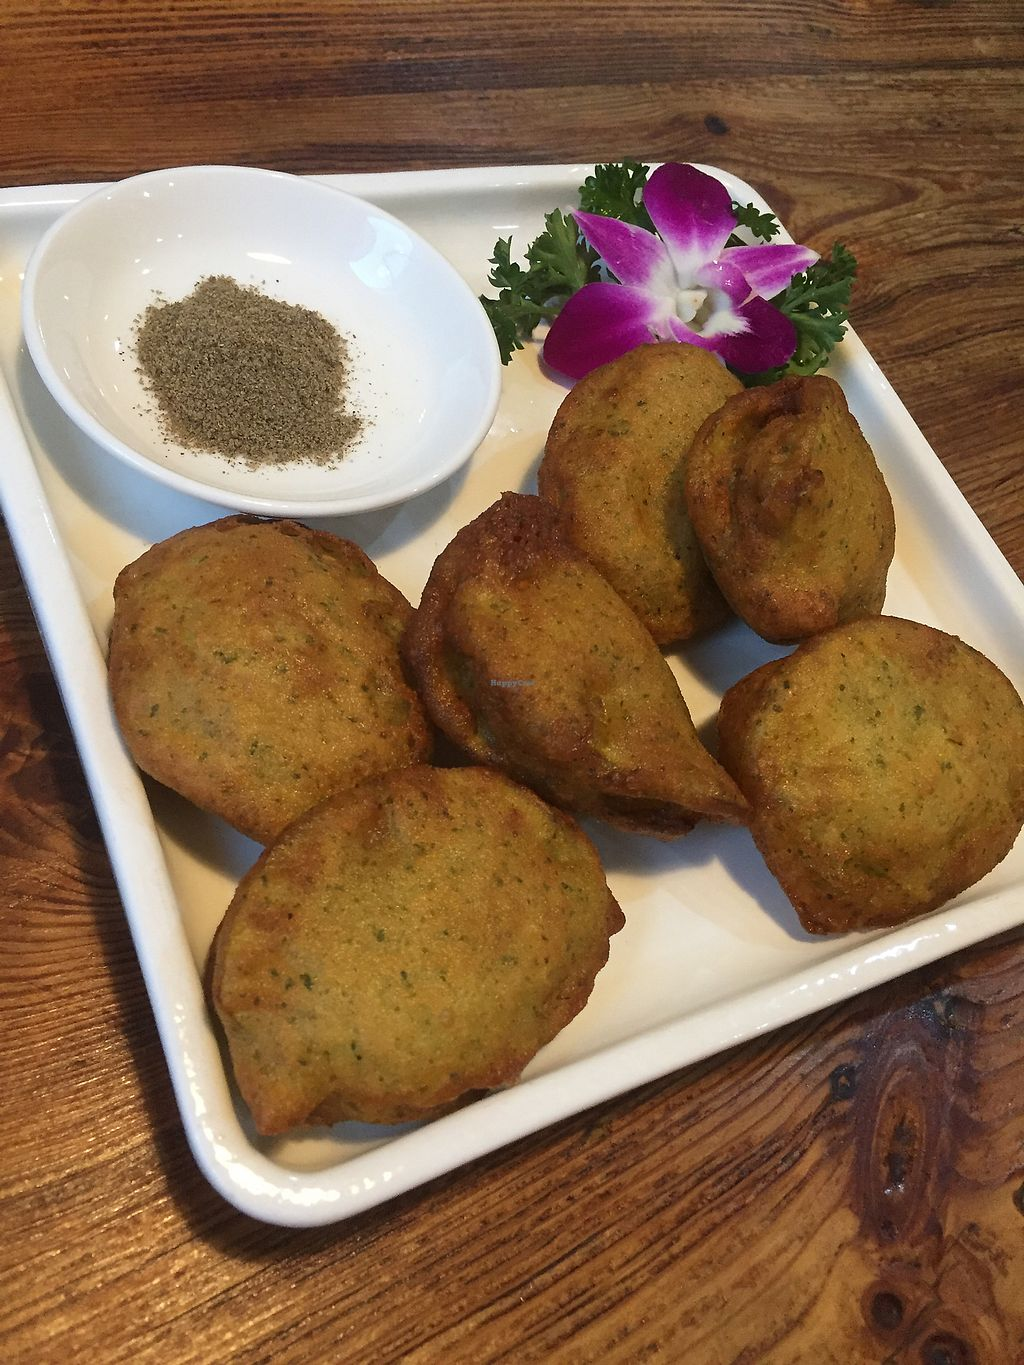 """Photo of Ji Xiang Cao - Lucky Zen & Veg Restaurant  by <a href=""""/members/profile/H2OAddict"""">H2OAddict</a> <br/>Fried zucchini pancakes with mushroom inside <br/> August 29, 2017  - <a href='/contact/abuse/image/17209/298576'>Report</a>"""